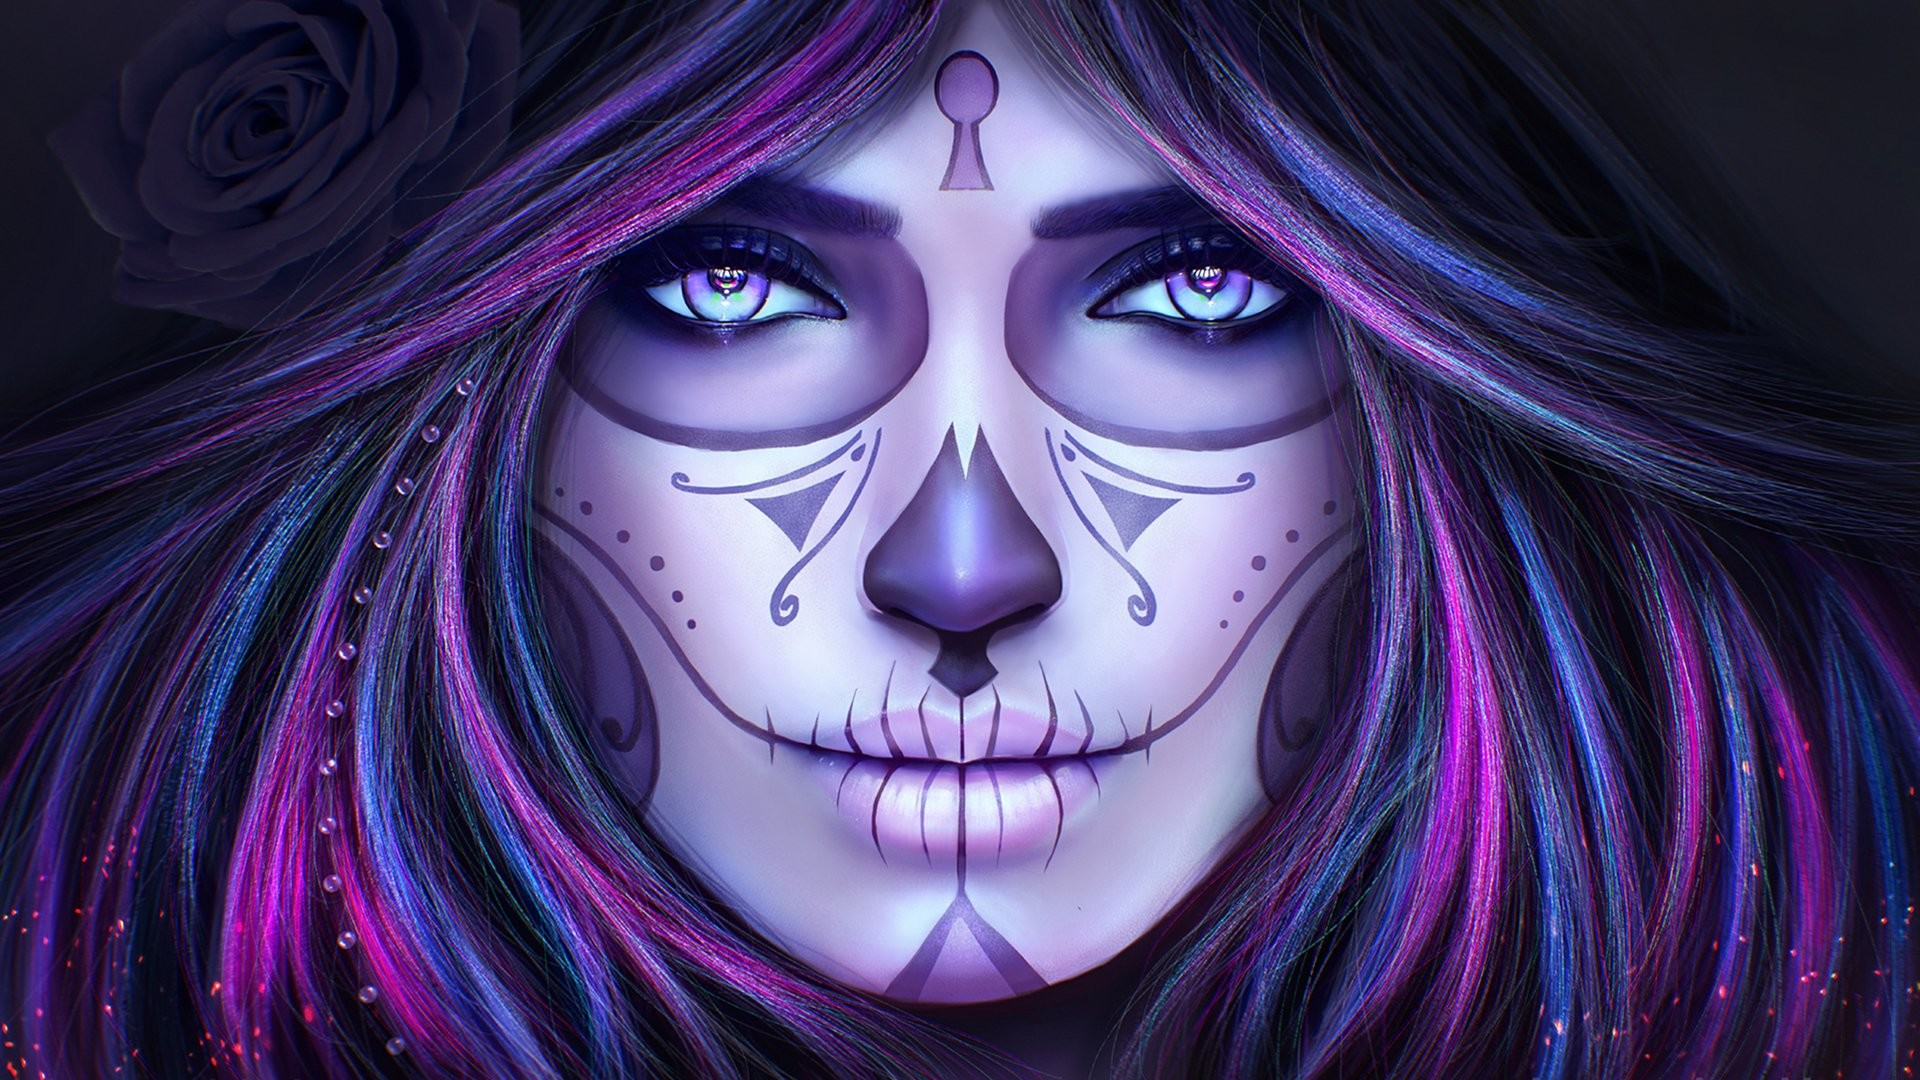 Res: 1920x1080, Artistic - Sugar Skull Face Woman Girl Purple Day of the Dead Wallpaper